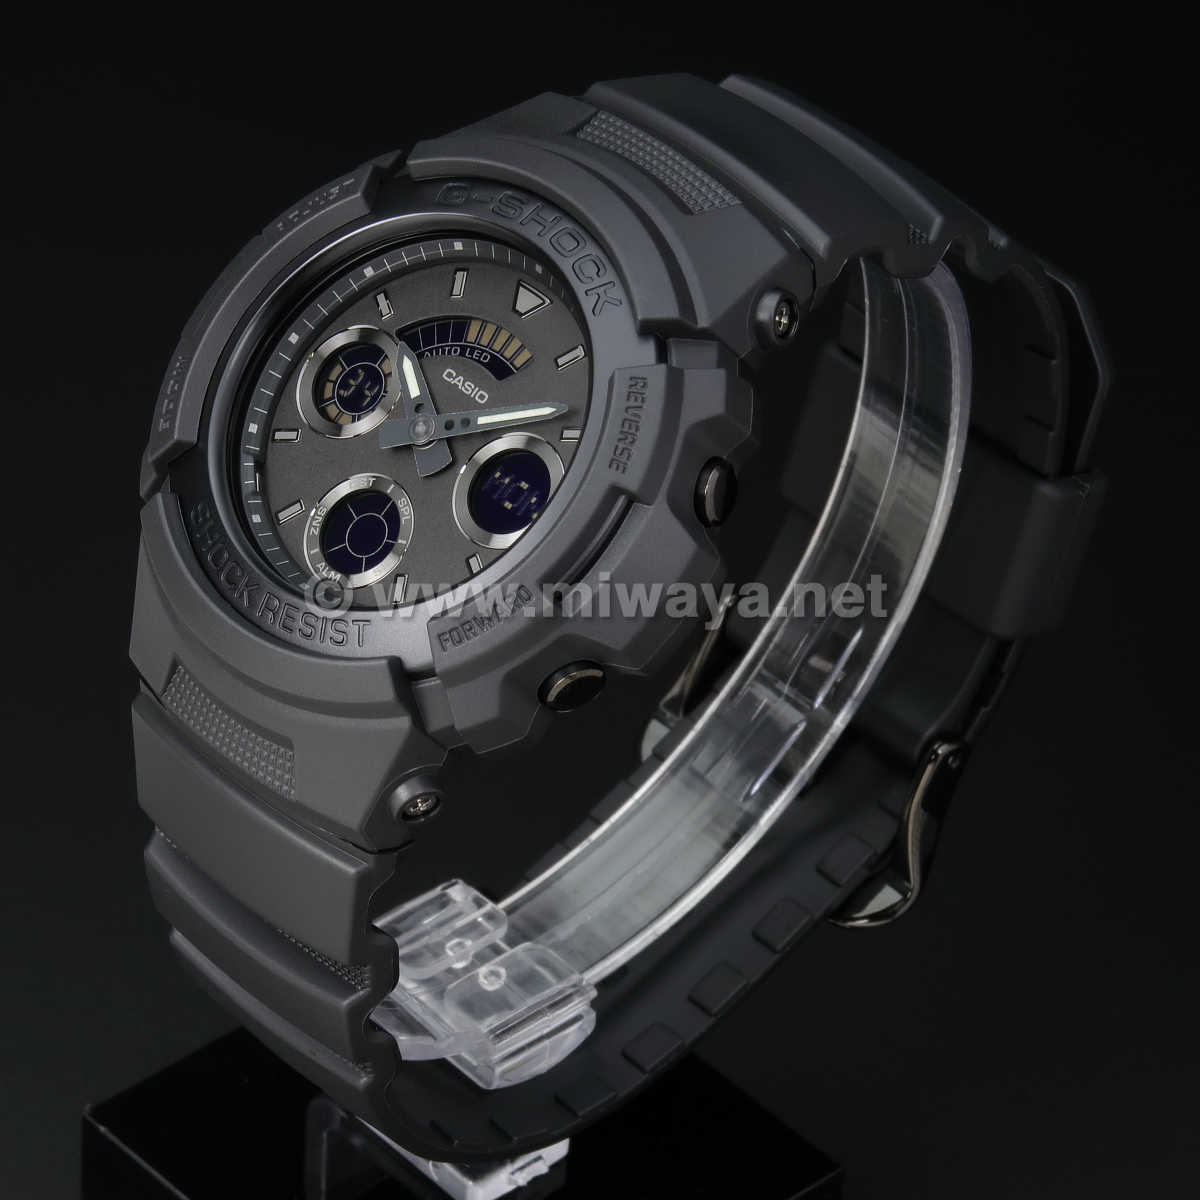 【G-SHOCK】AW-591BB-1AJF